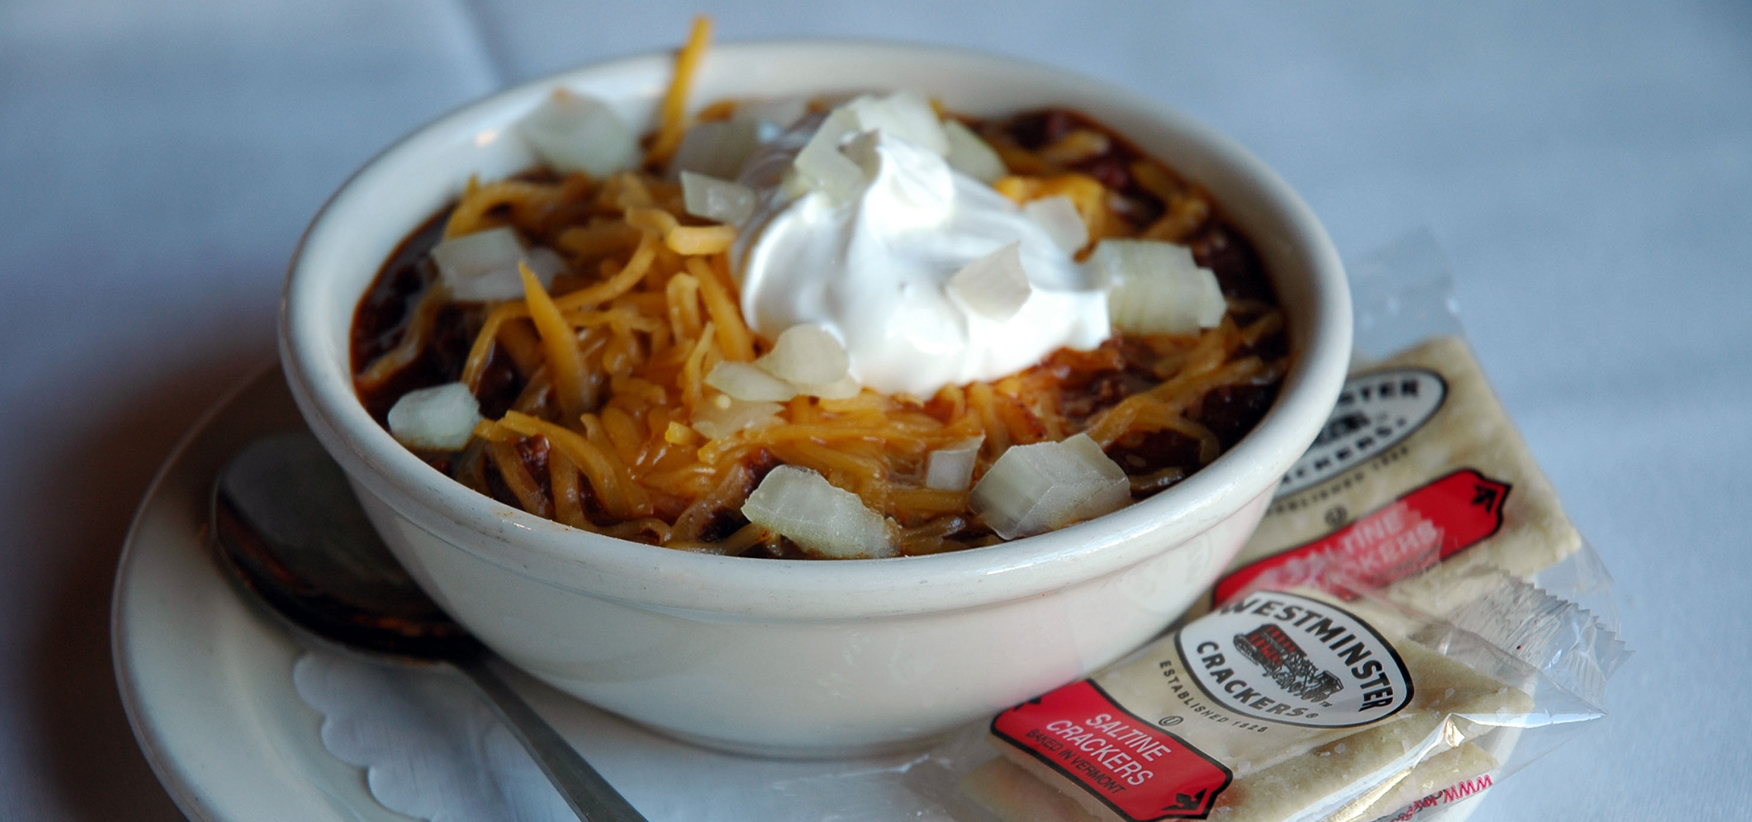 Clyde's famous chili is served at all its locations in the area, and is so popular that it's even served at Old Ebbitt Grill. The signature recipe uses dark chili powder, which results in a slightly sweeter taste, but a hint of spice and smoke. (Image: Courtesy Clyde's)<p></p>